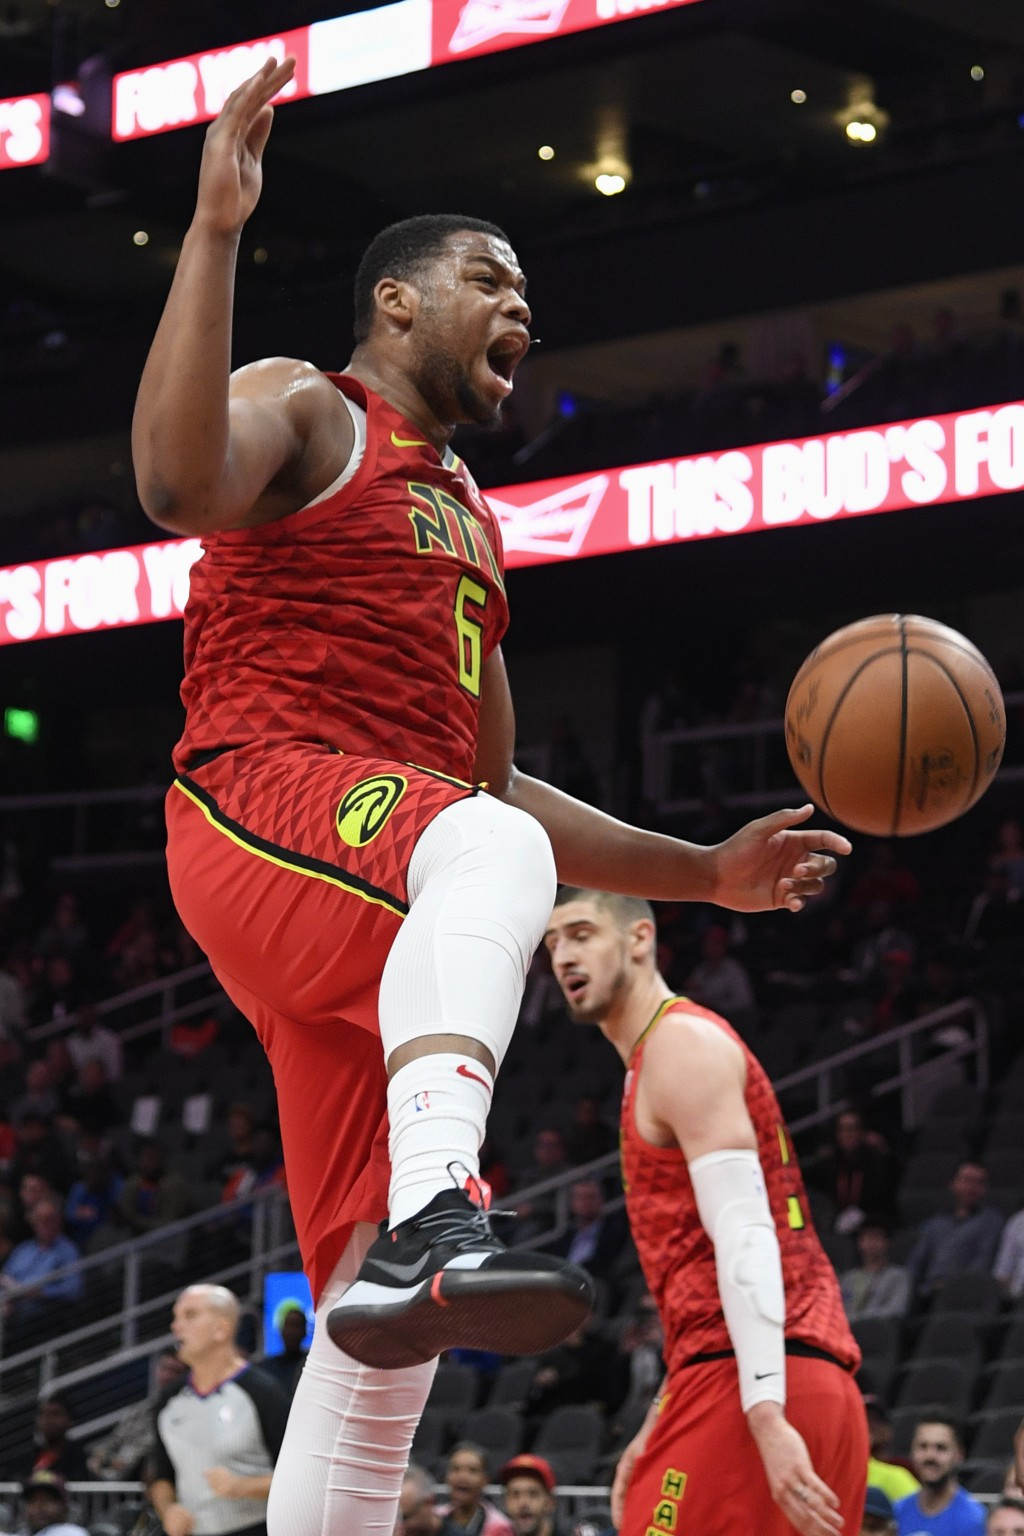 Atlanta Hawks forward Omari Spellman reacts after dunking against the New York Knicks during the first half of an NBA basketball game Wednesday, Nov.